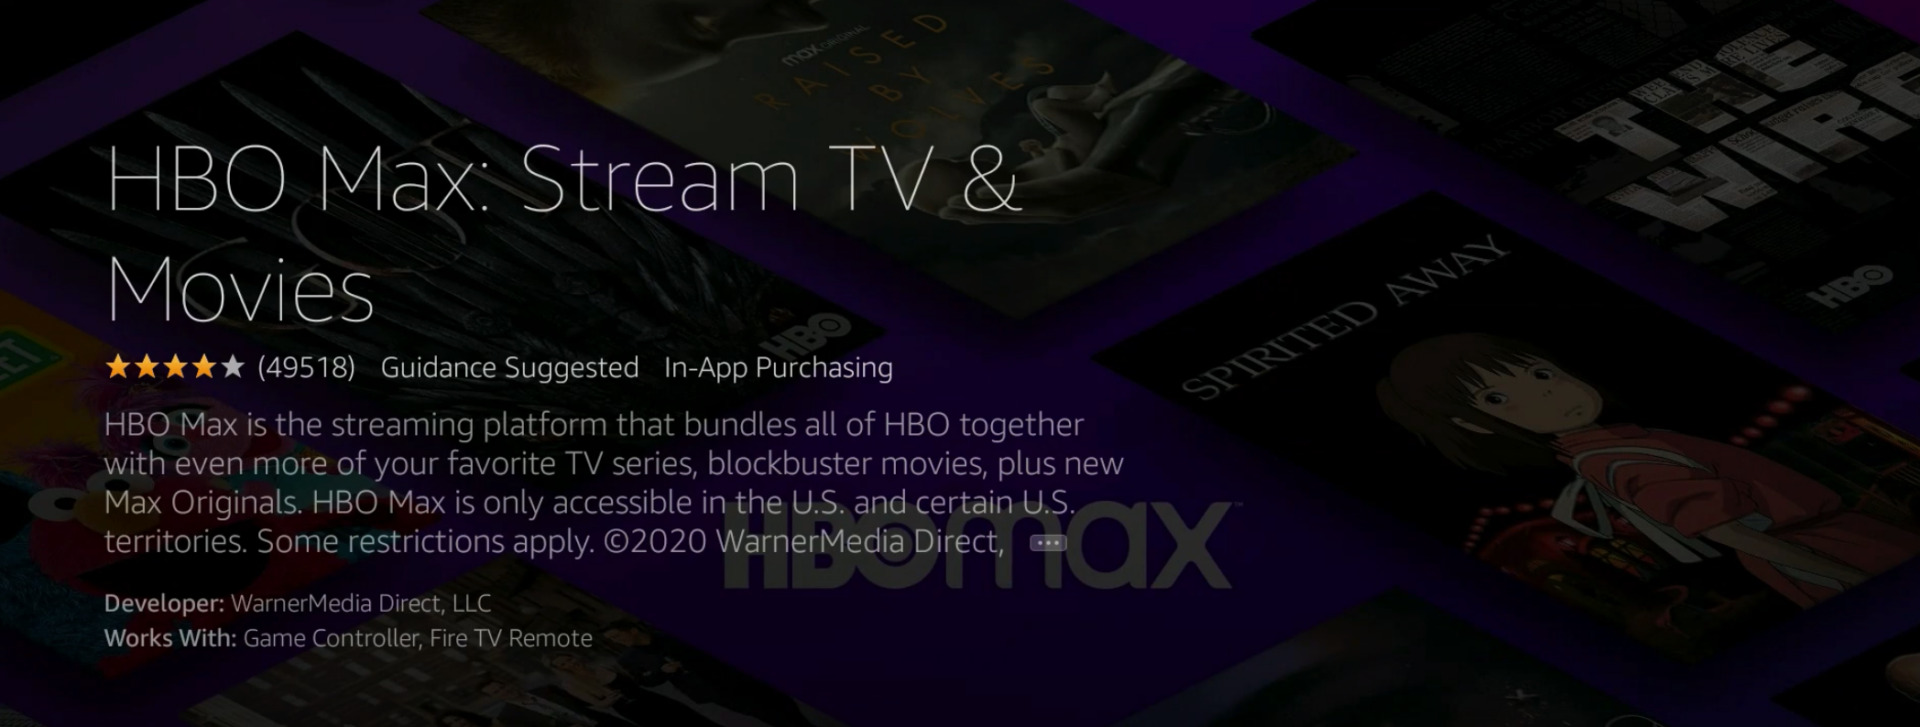 HBO Max Ad